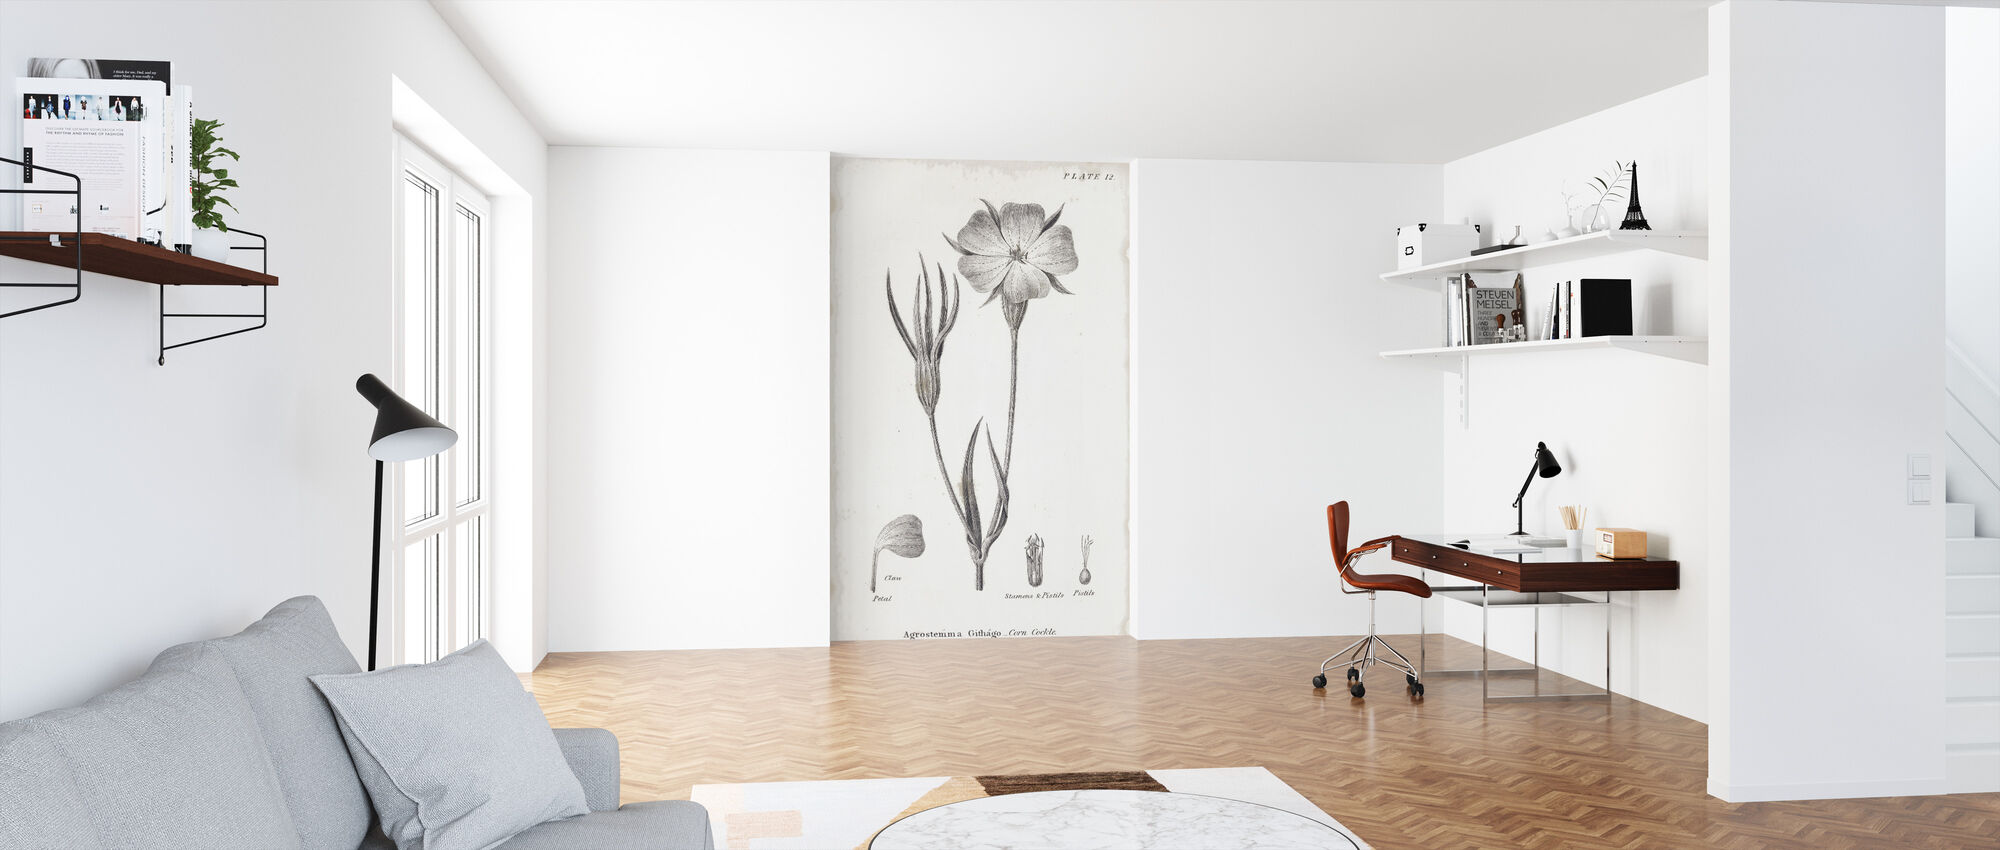 Botanical Chart - Corn Cockle - Wallpaper - Office